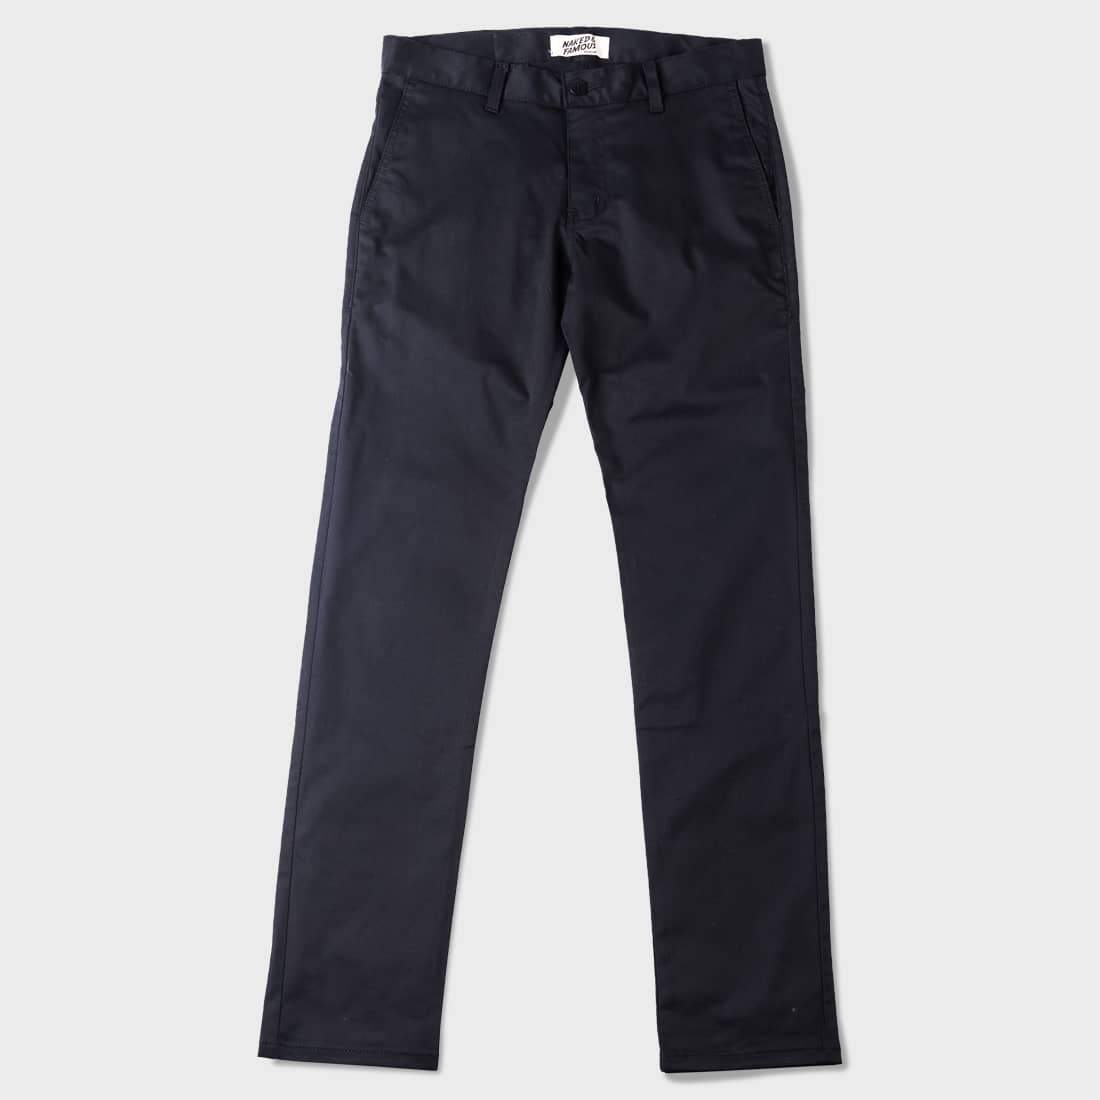 Naked & Famous Slim Chino Stretch Twill Black